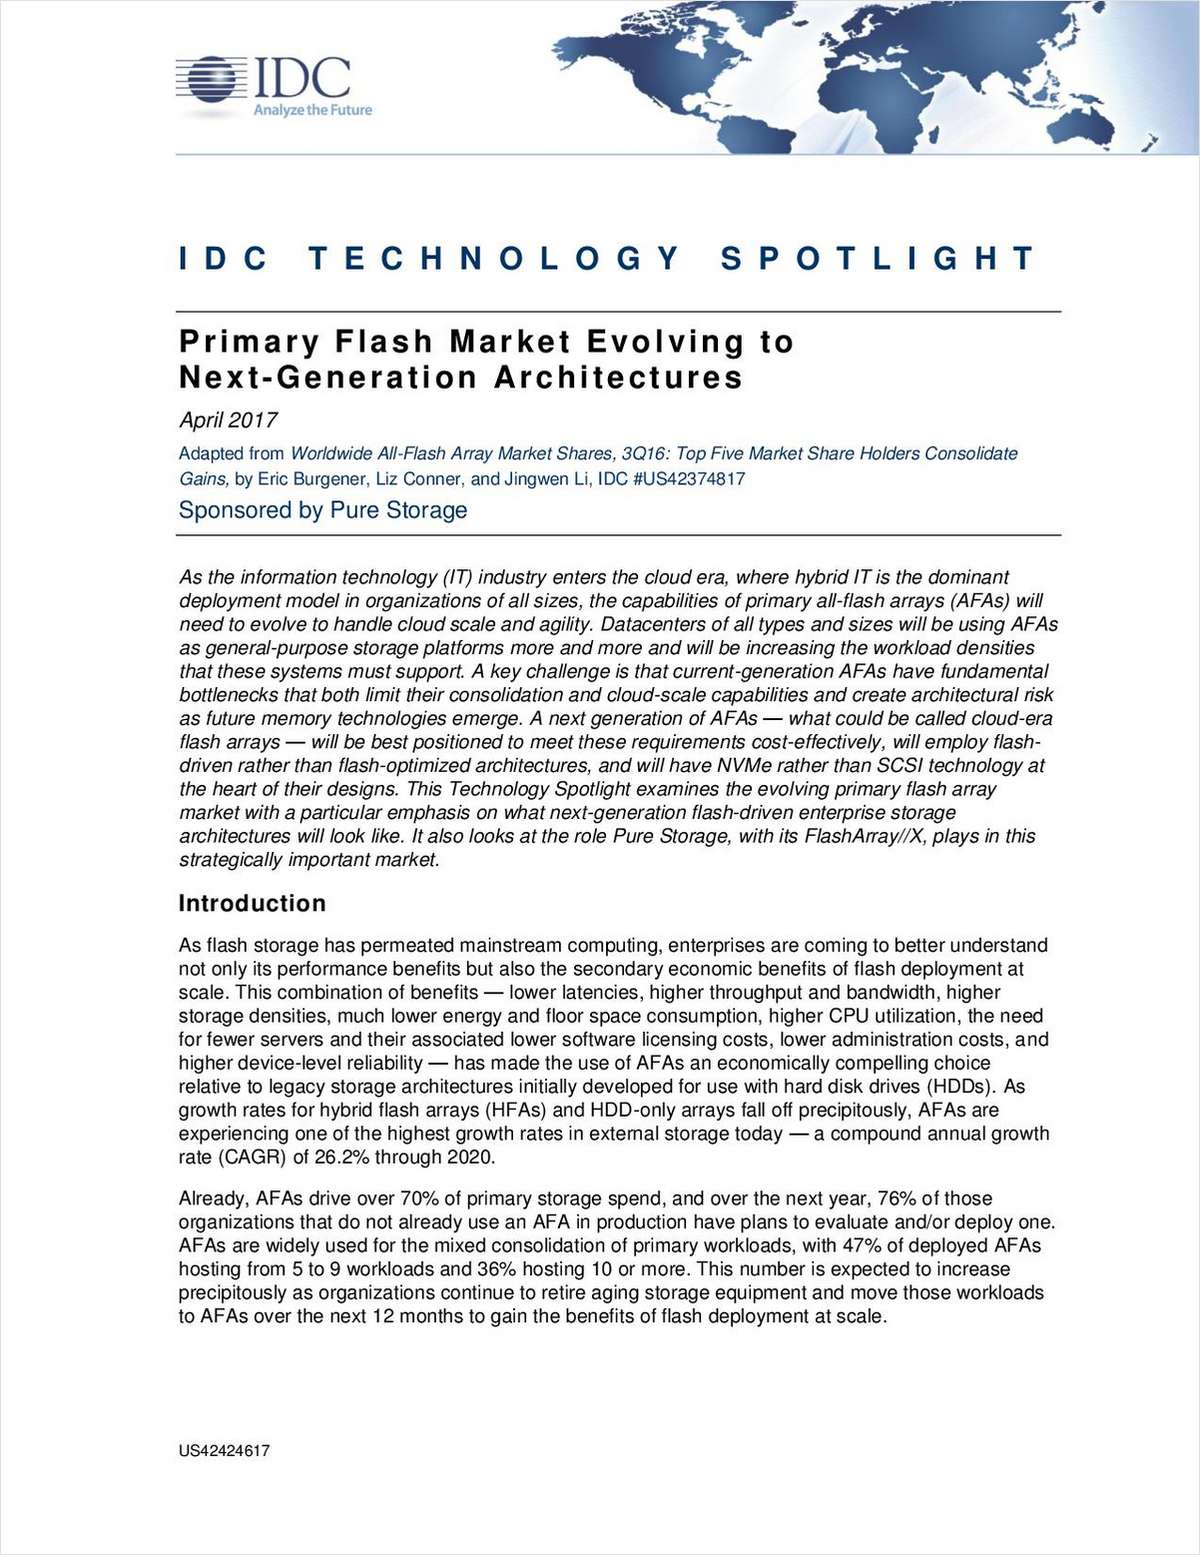 IDC'S Perspective on How Primary Flash Market is Evolving to Next-Generation Architectures